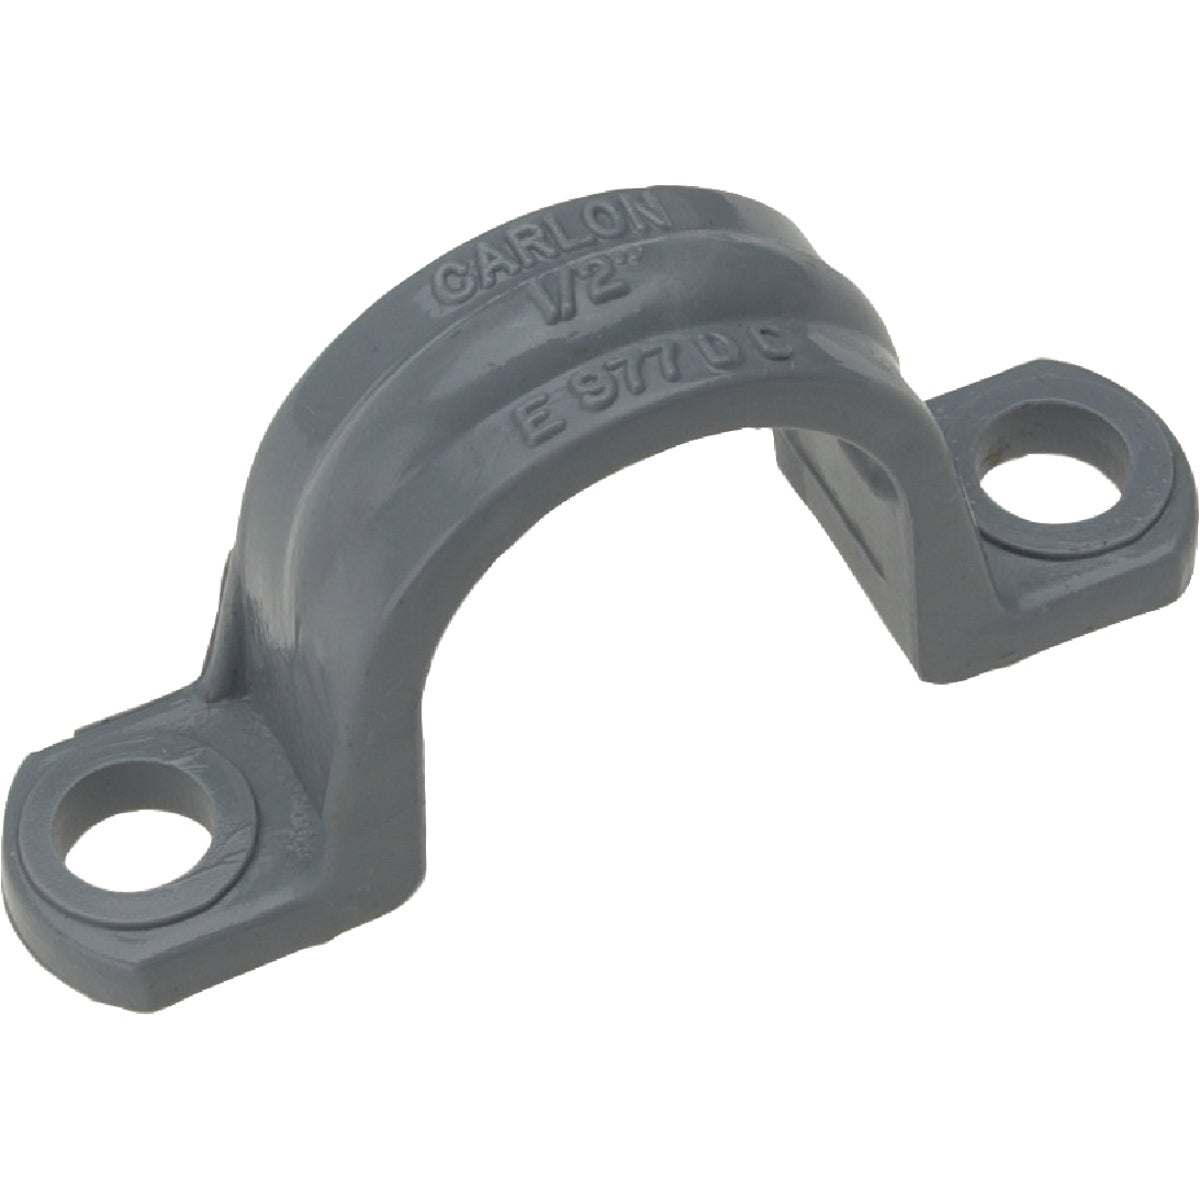 "2"" PVC STRAP - E977JCRCTN by Thomas & Betts"